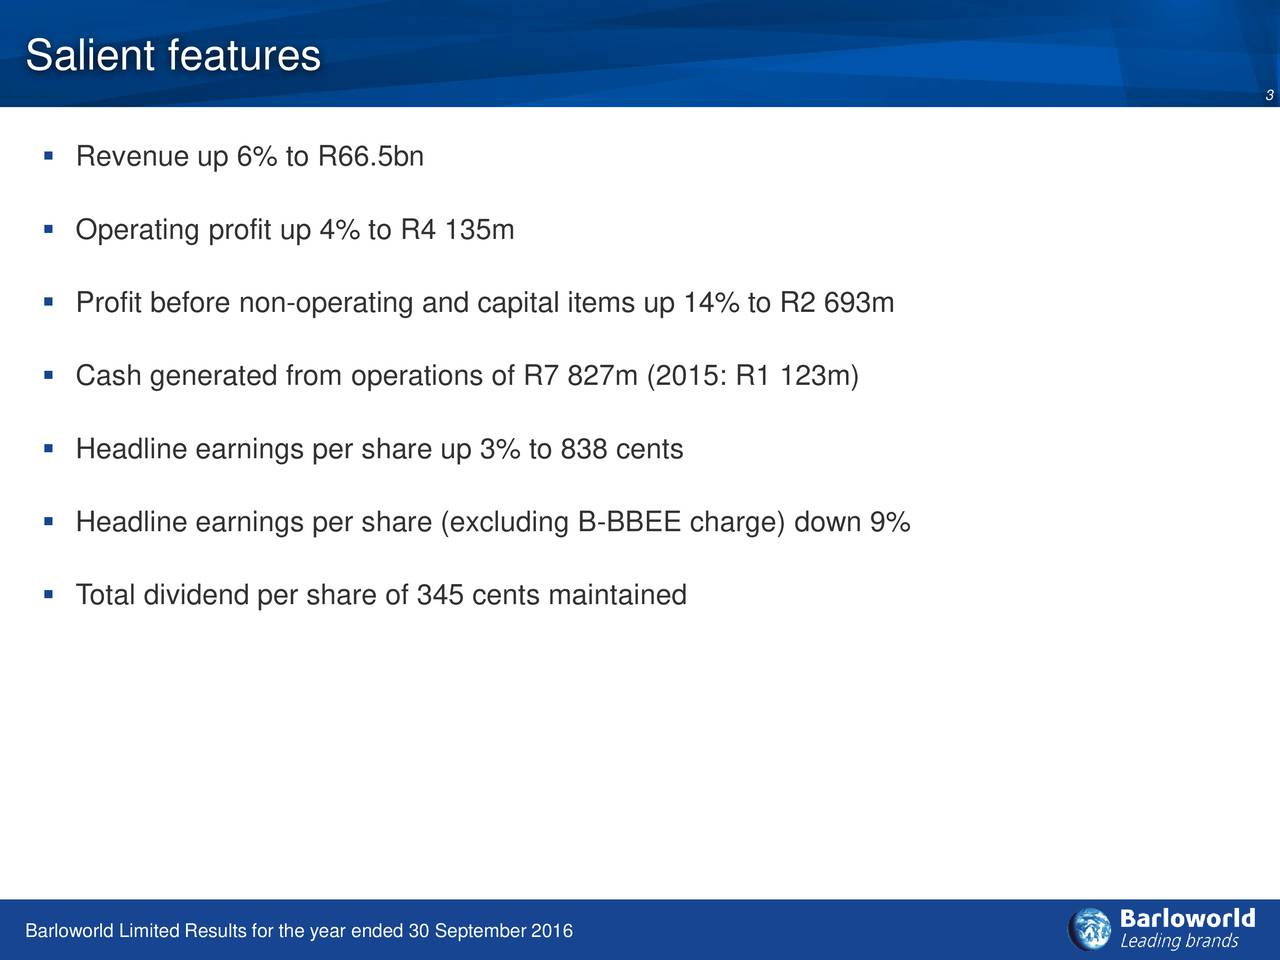 3 Revenue up 6% to R66.5bn Operating profit up 4% to R4 135m Profit before non-operating and capital items up 14% to R2 693m Cash generated from operations of R7 827m (2015: R1 123m) Headline earnings per share up 3% to 838 cents Headline earnings per share (excluding B-BBEE charge) down 9% Total dividend per share of 345 cents maintained Barloworld Limited Results for the year ended 30 September 2016